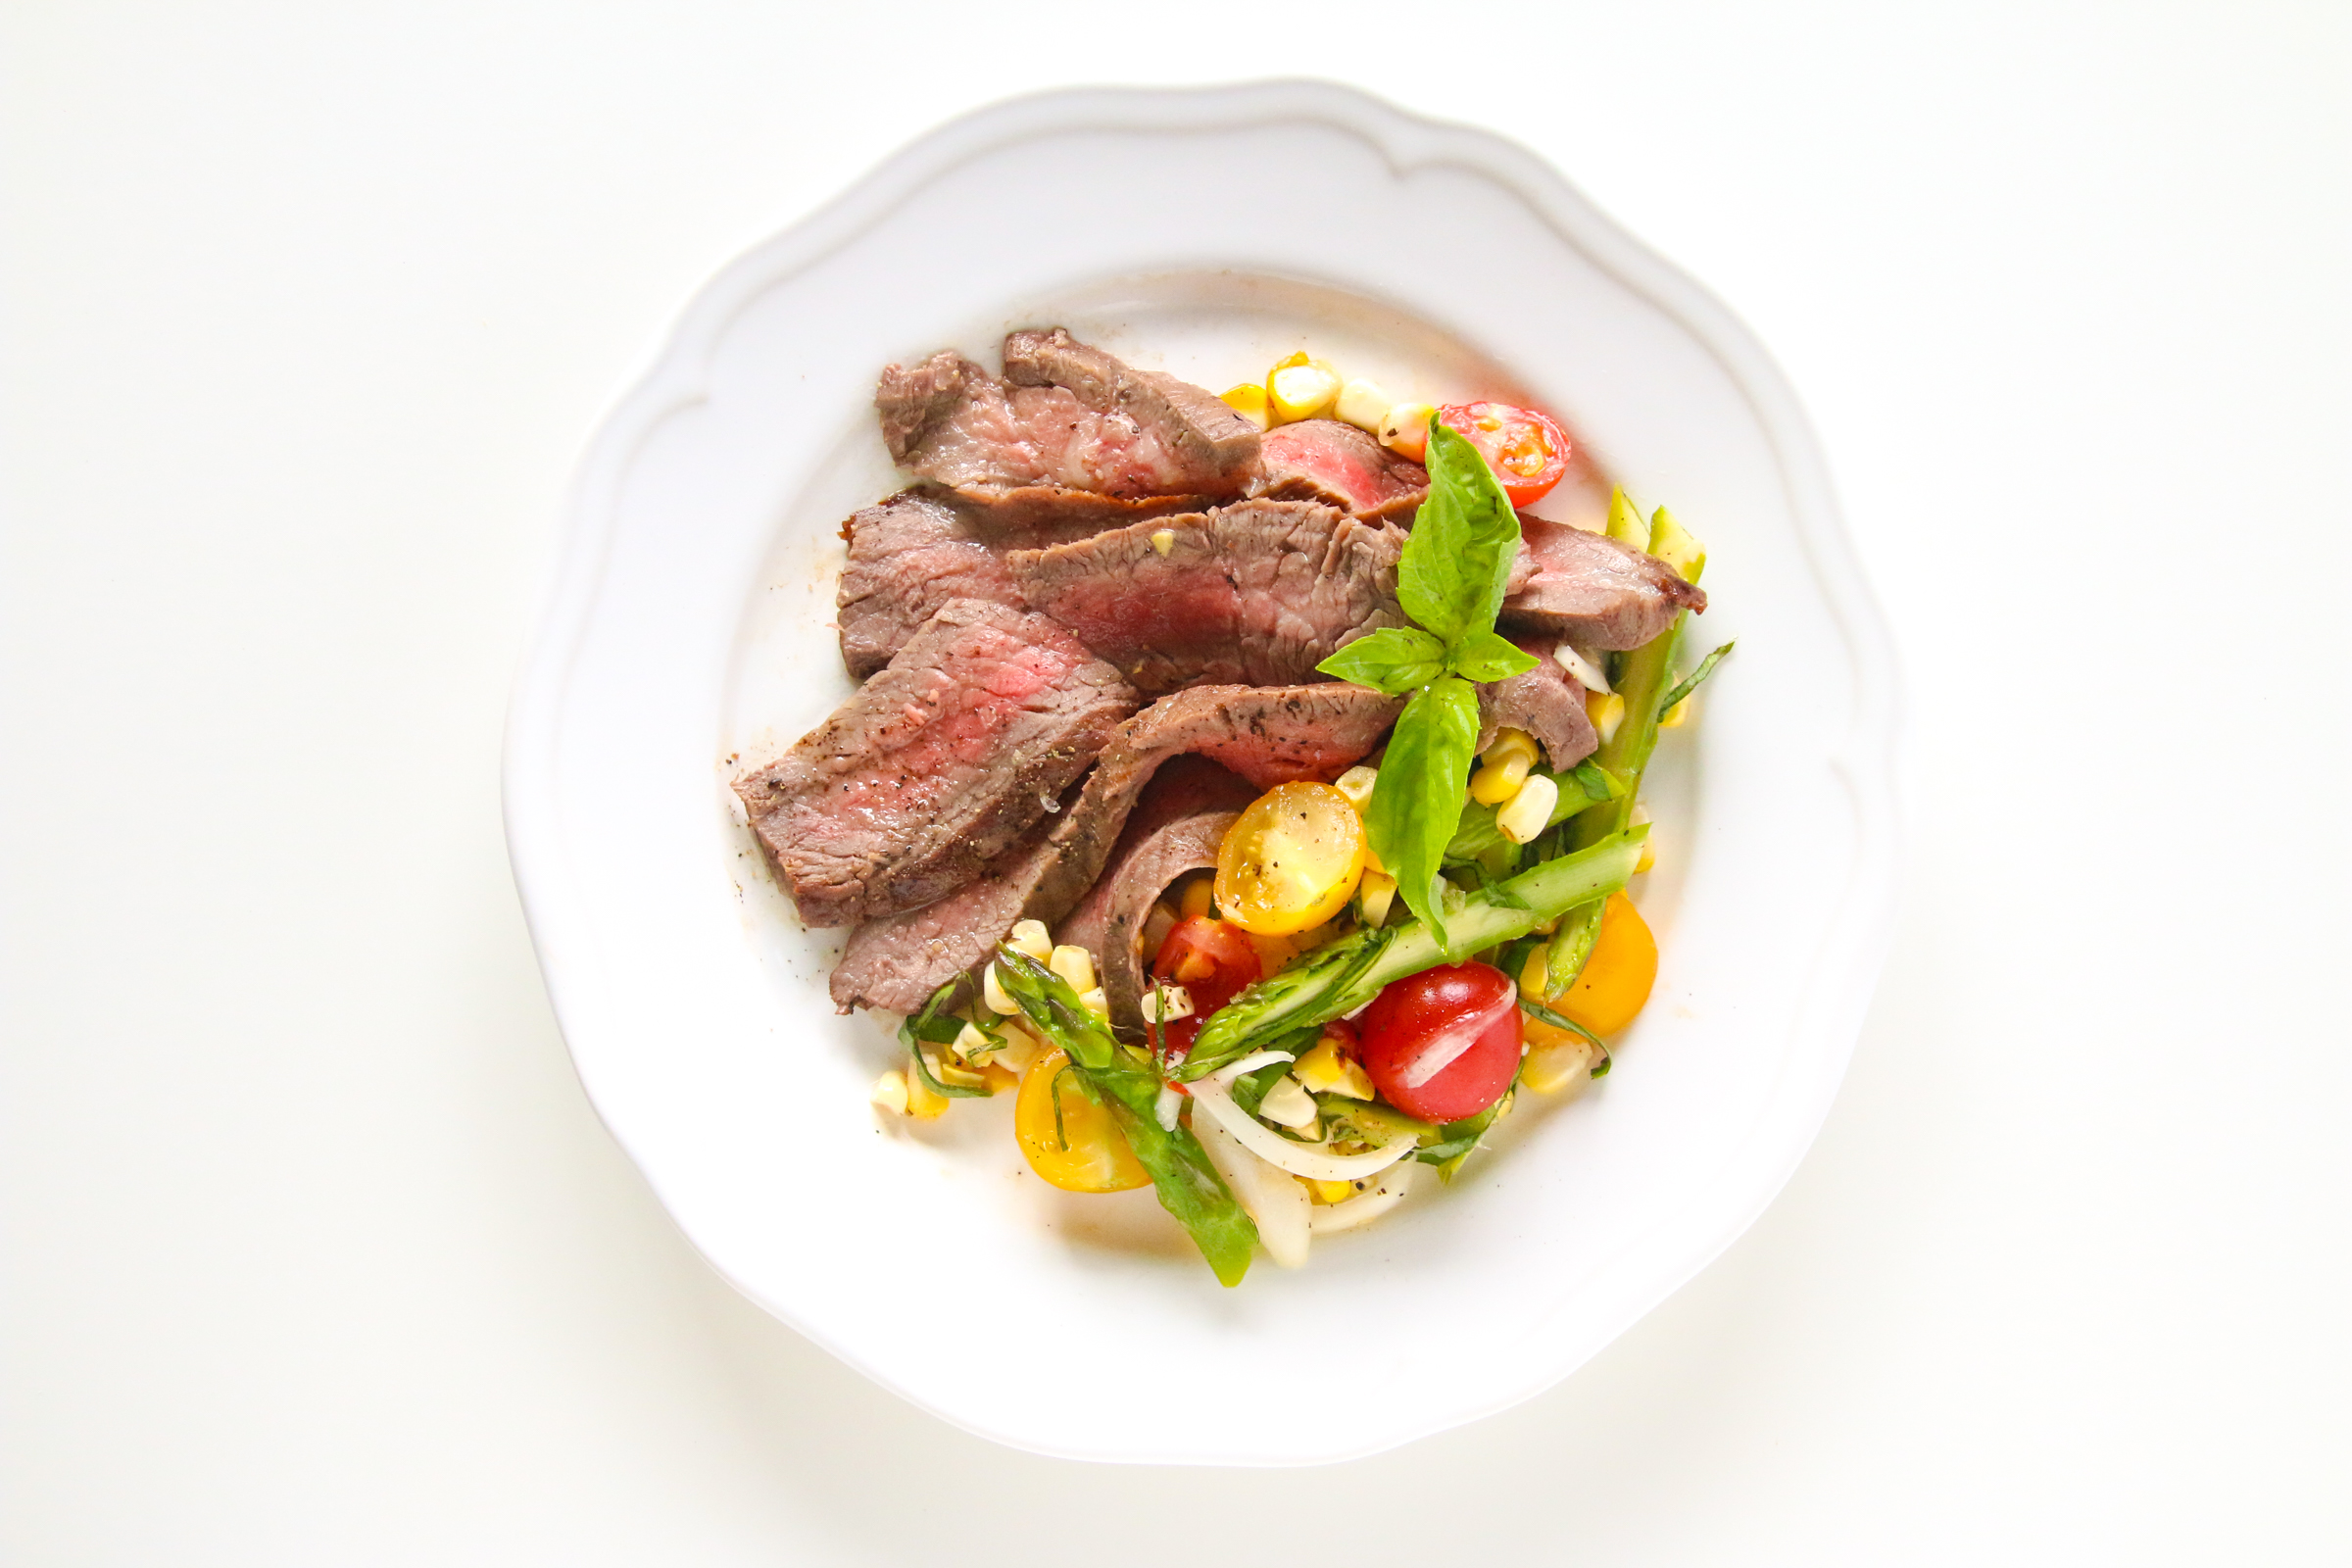 Marinated Flank Steak with Corn Asparagus and Tomato Salad | ChefJulieYoon.com